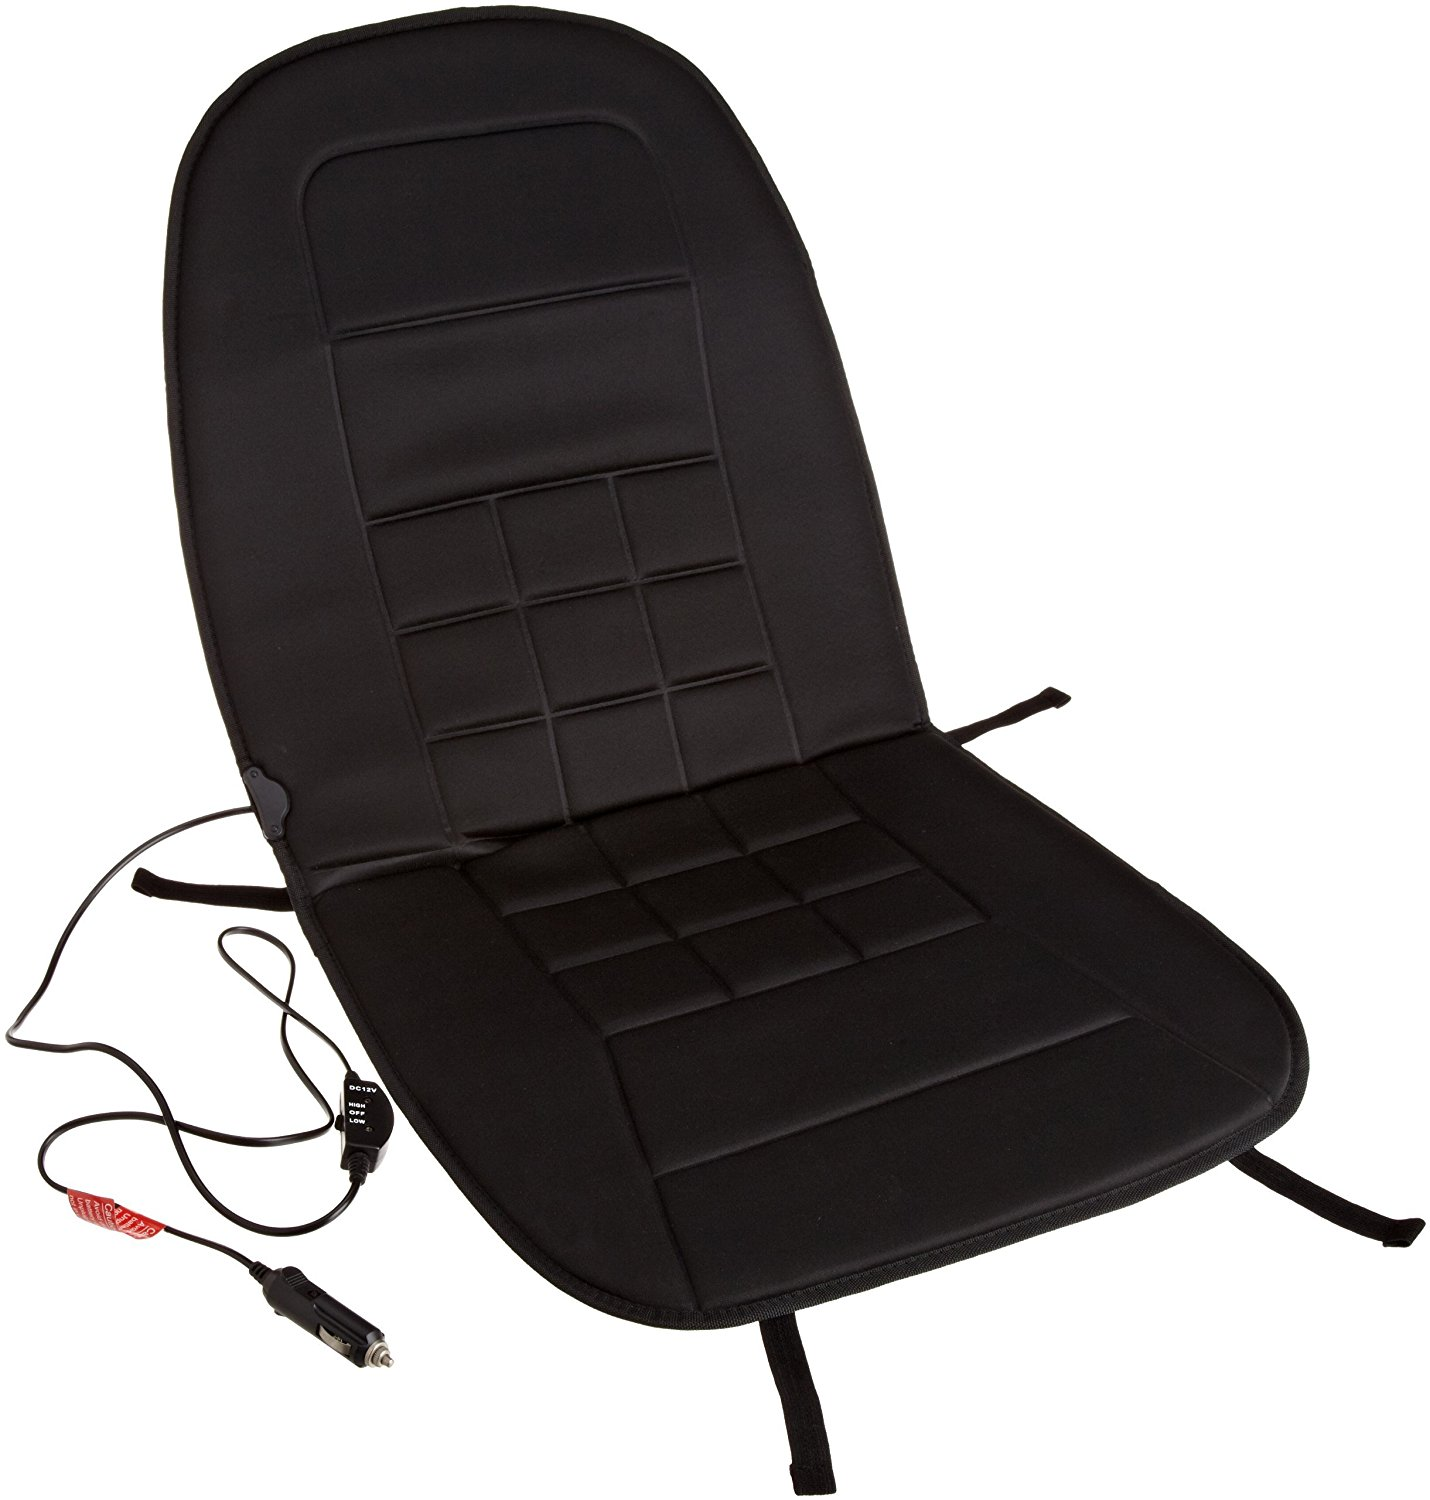 12-Volt Heated Seat Cushion With 3-Way Temperature